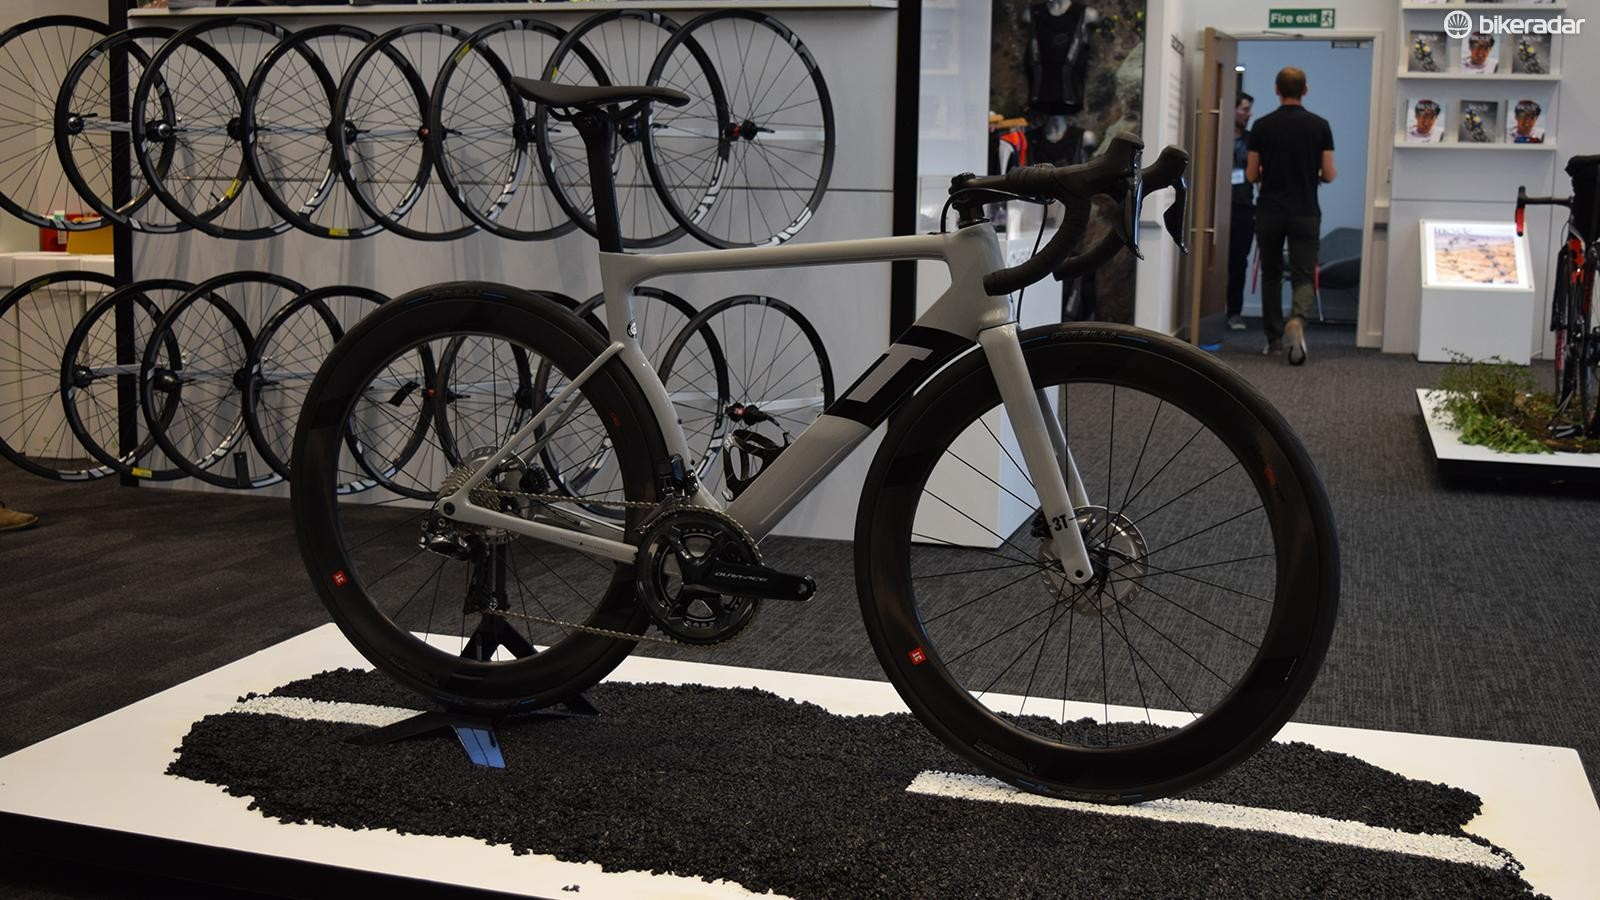 A look at the 3T Strada Due